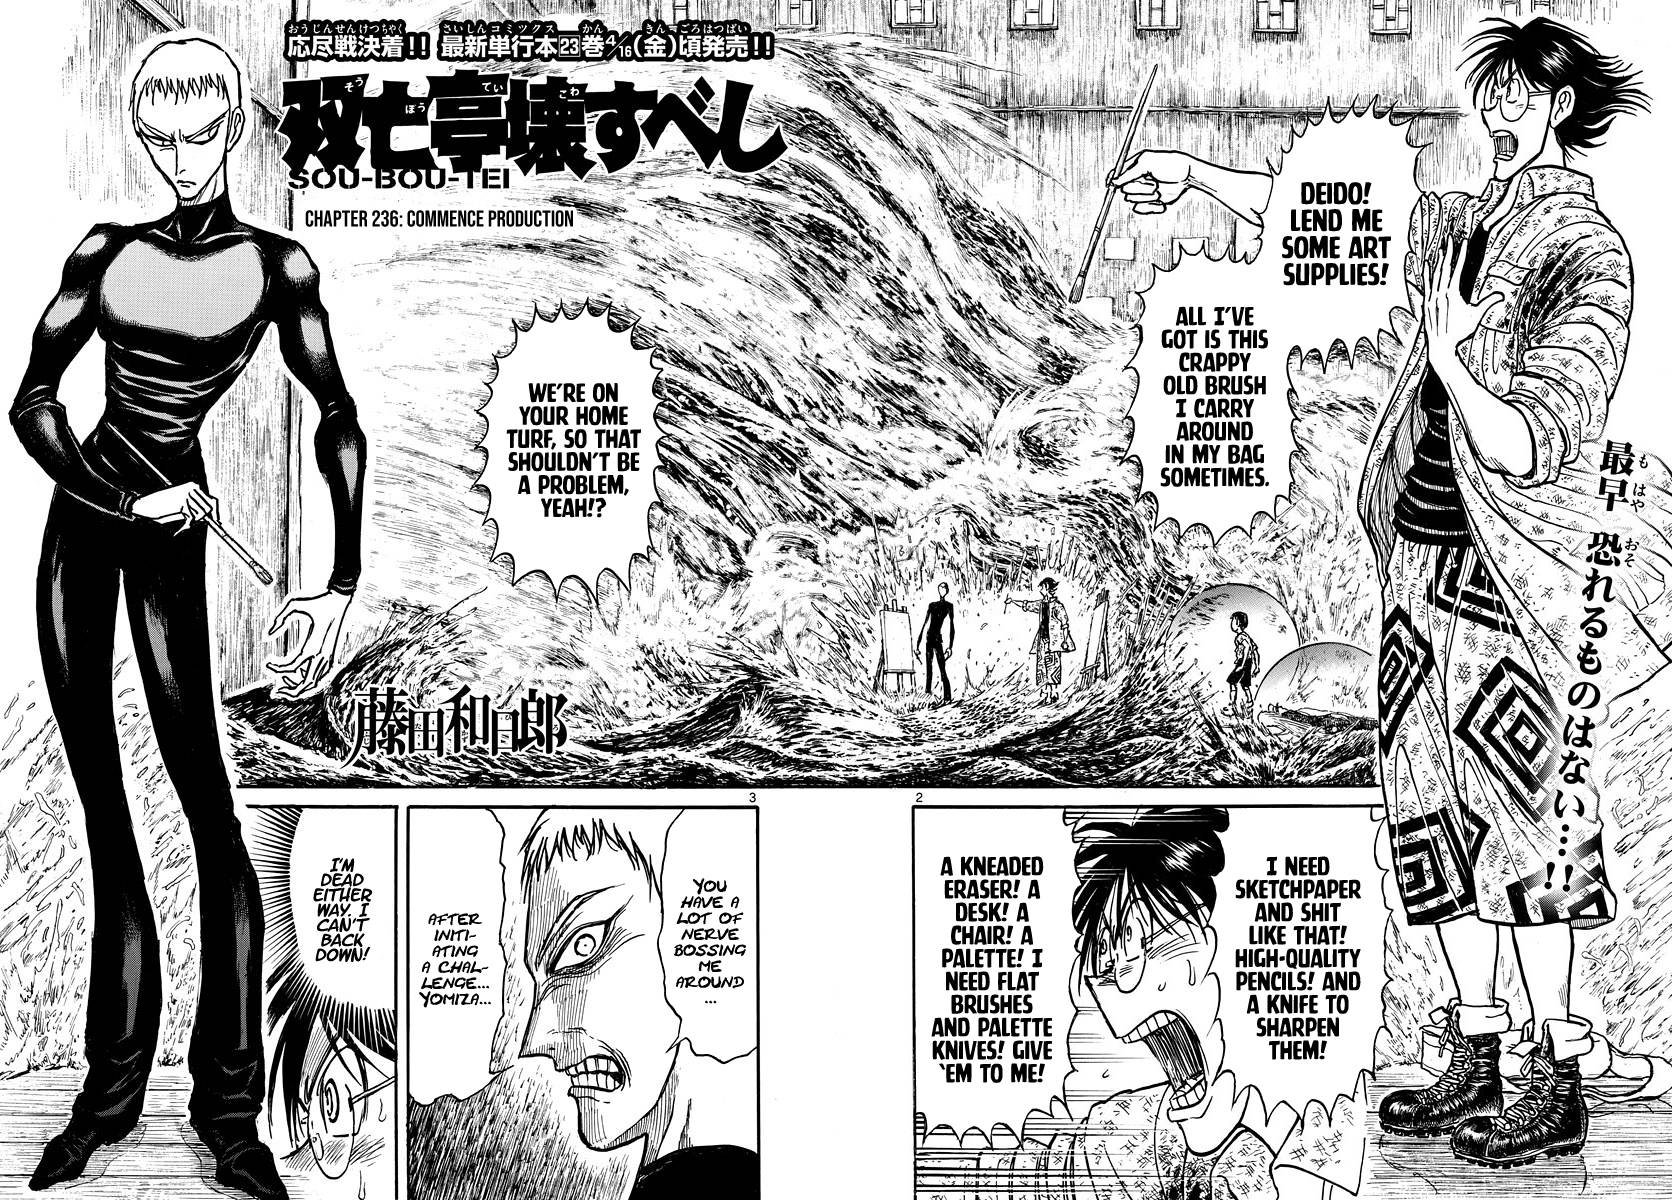 Souboutei Must be Destroyed - chapter 236 - #2